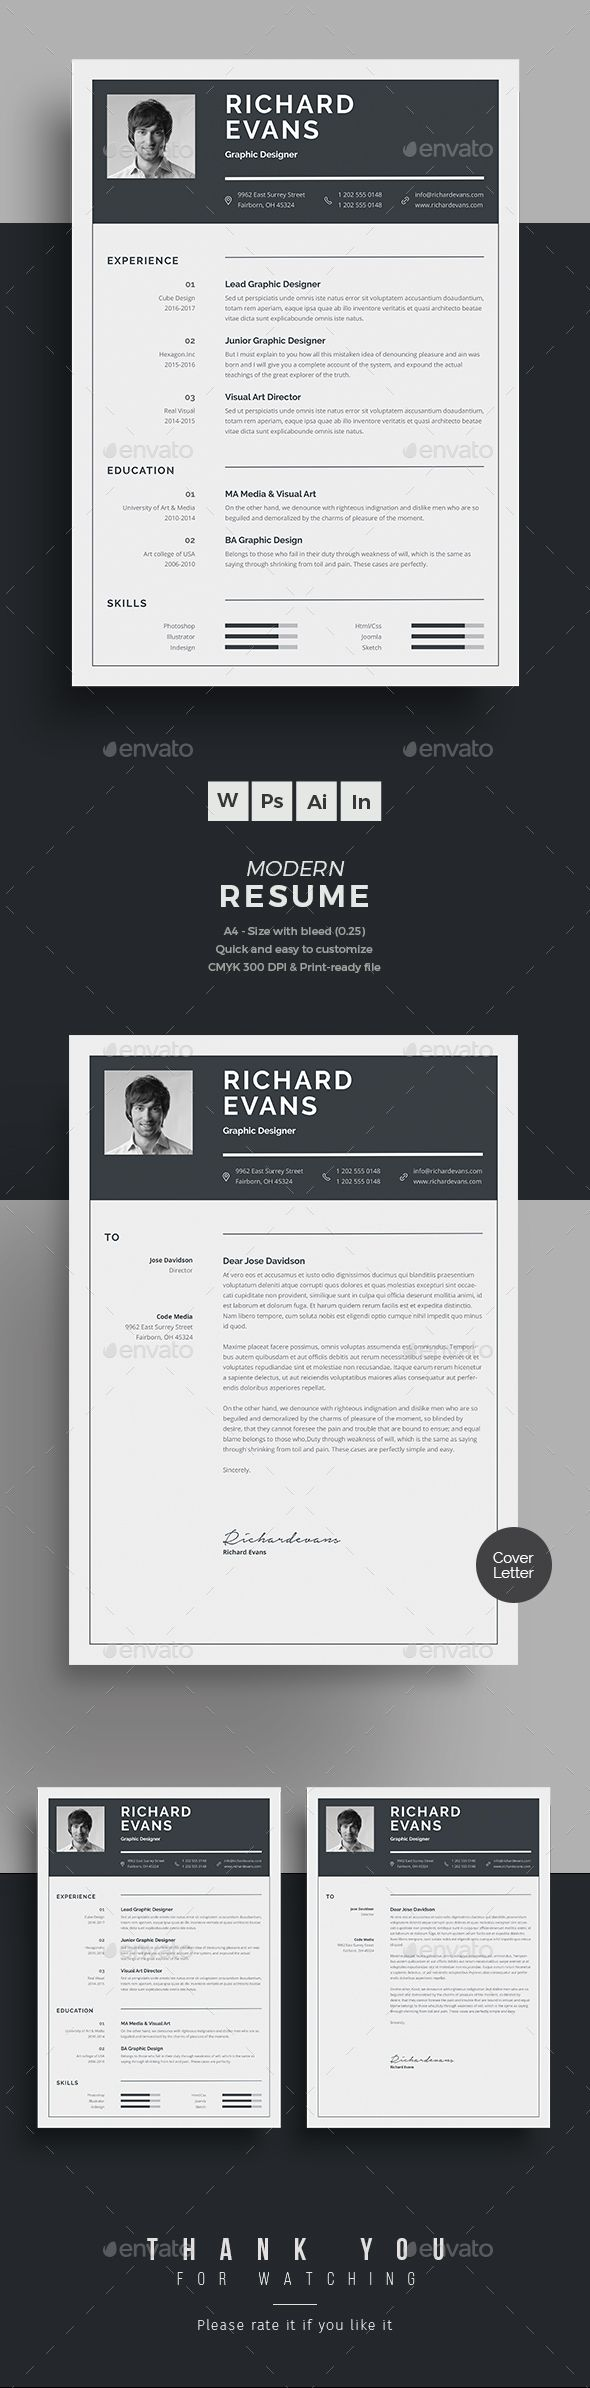 Resume by upra Resume Word Template / CV Template with super clean and modern look. Clean Resume Template page designs are easy to use and custom